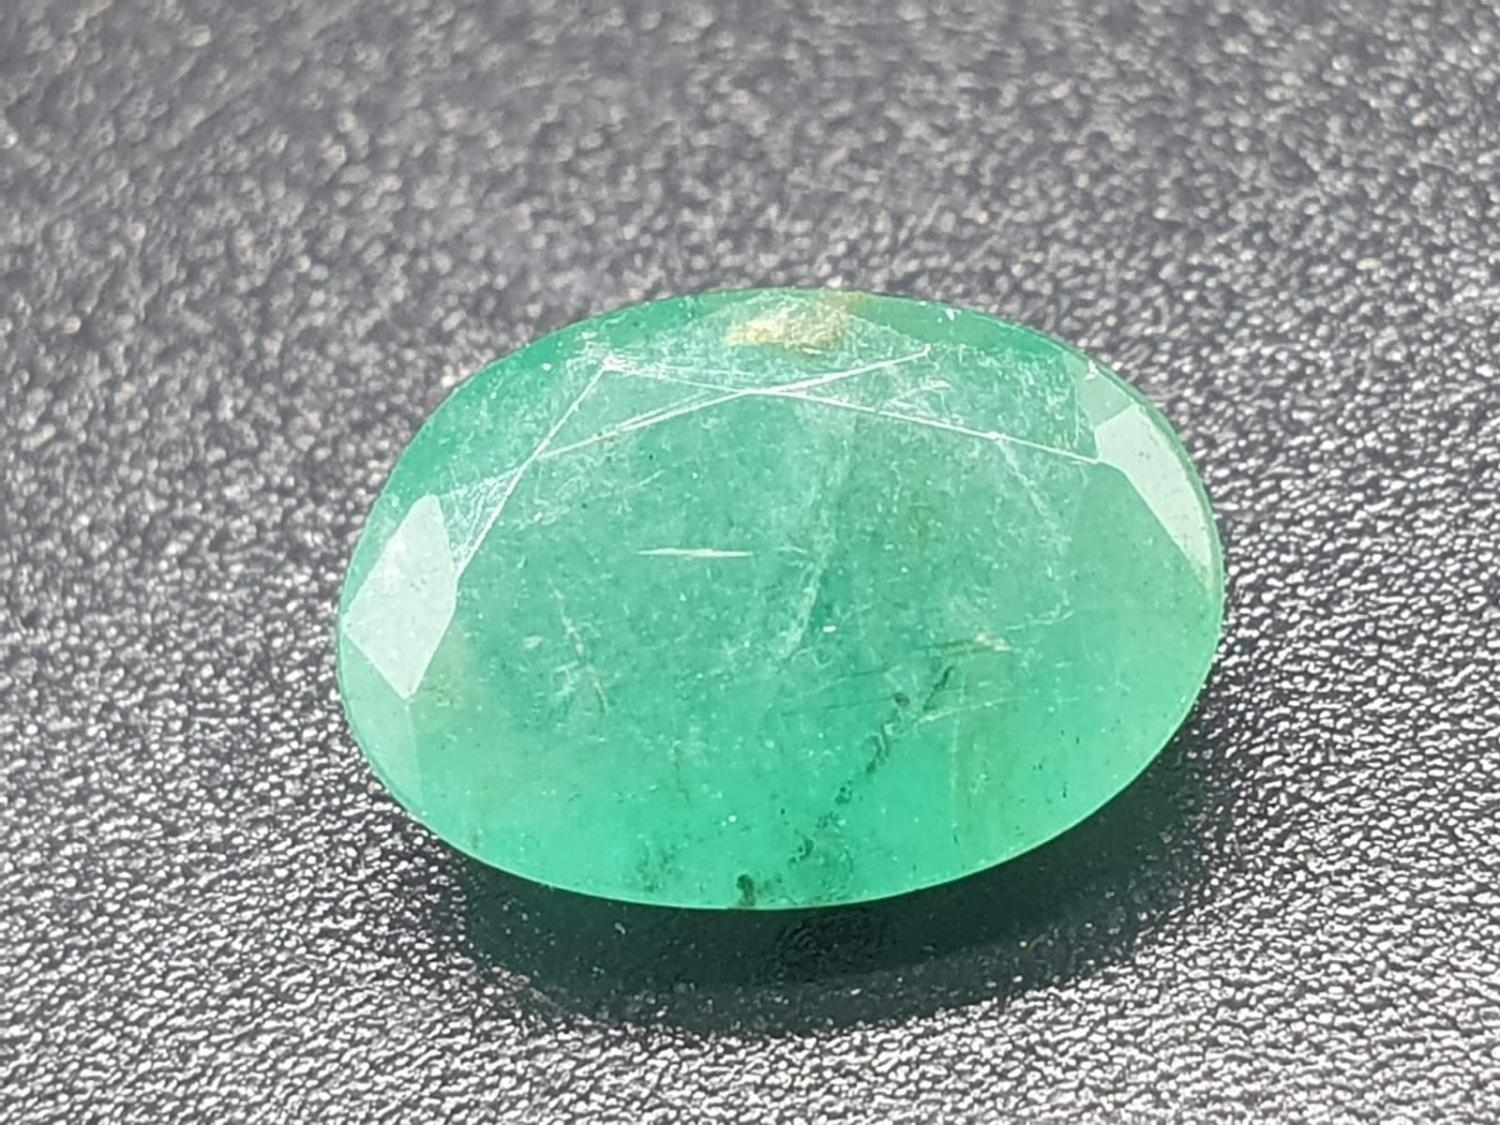 2.01 Ct Natural Loose Emerald. Oval shape. IDT certified